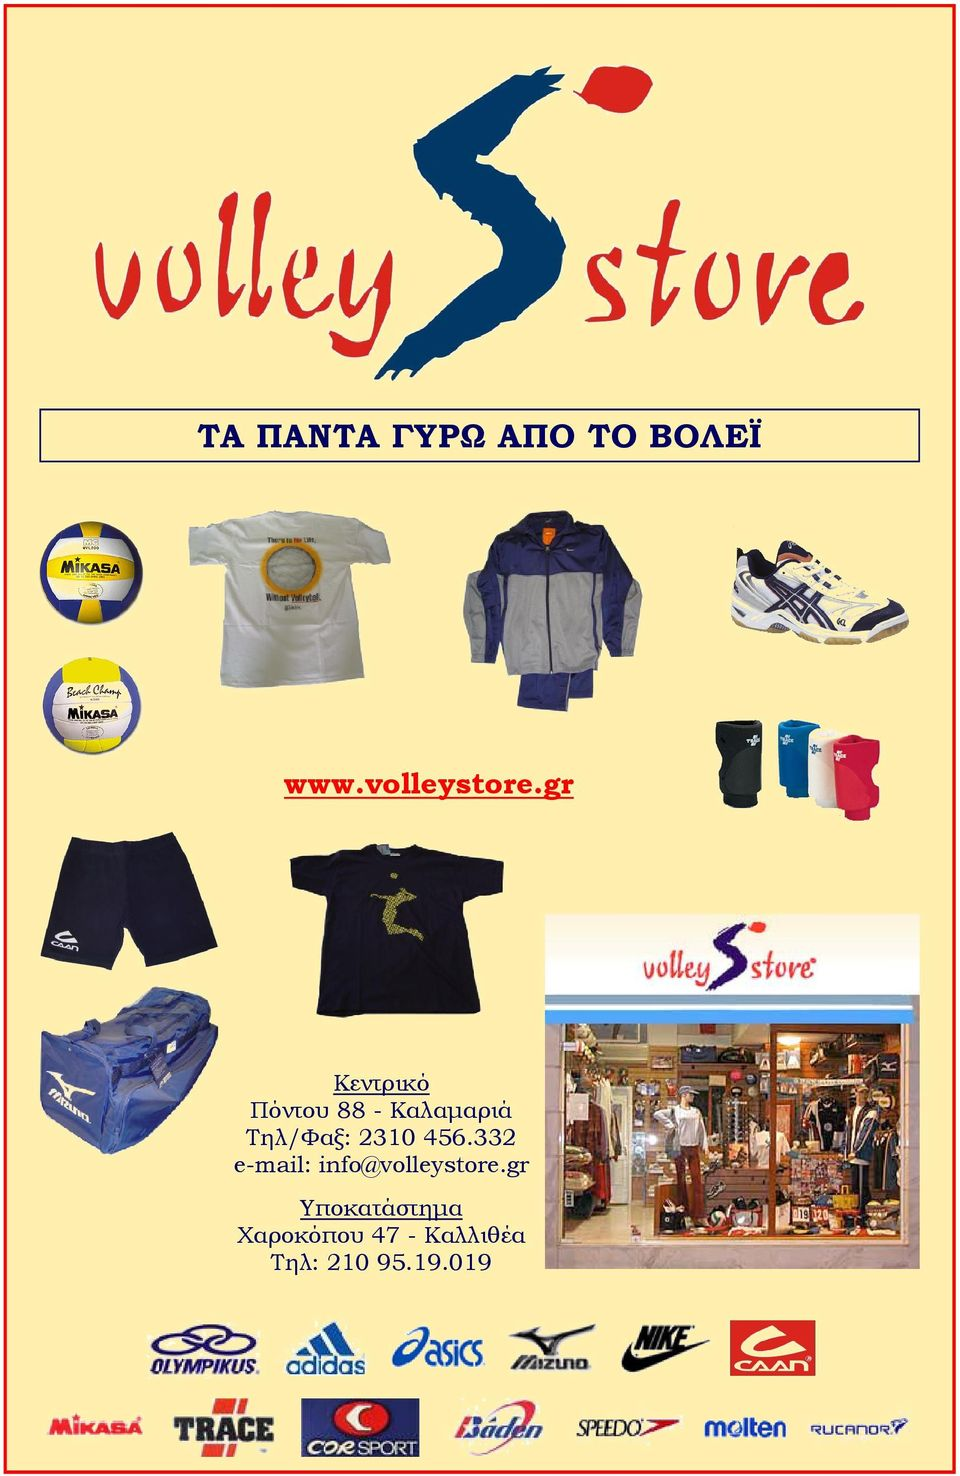 2310 456.332 e-mail: info@volleystore.